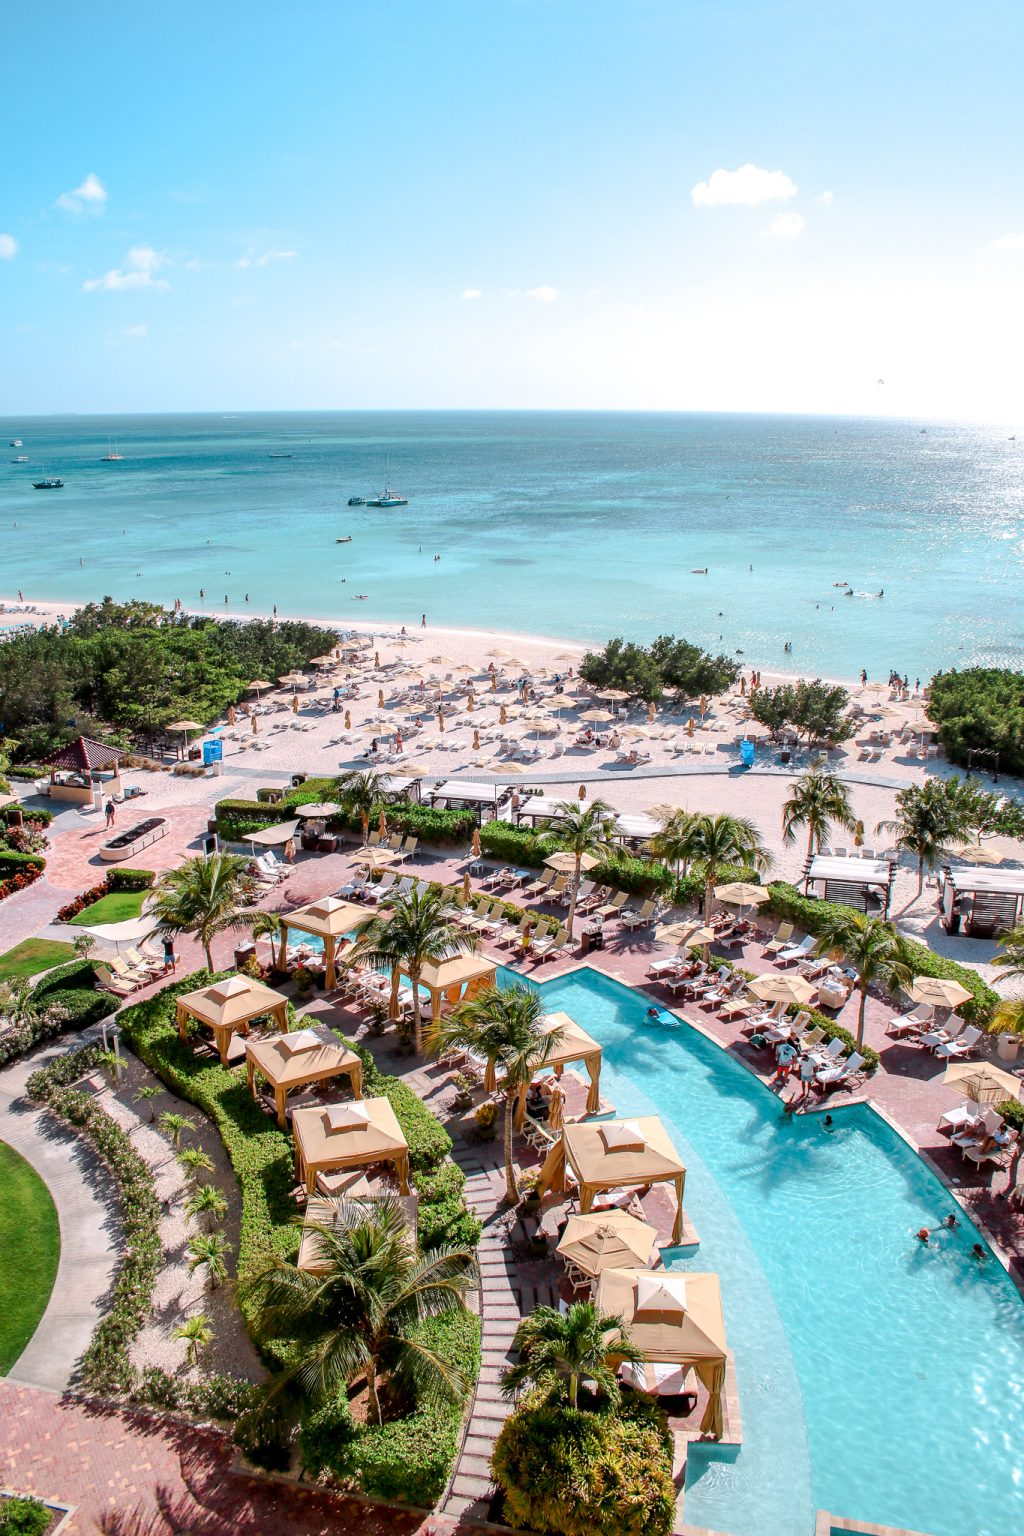 Where To Stay In Aruba: A Luxury Getaway At The Ritz Carlton - balcony views